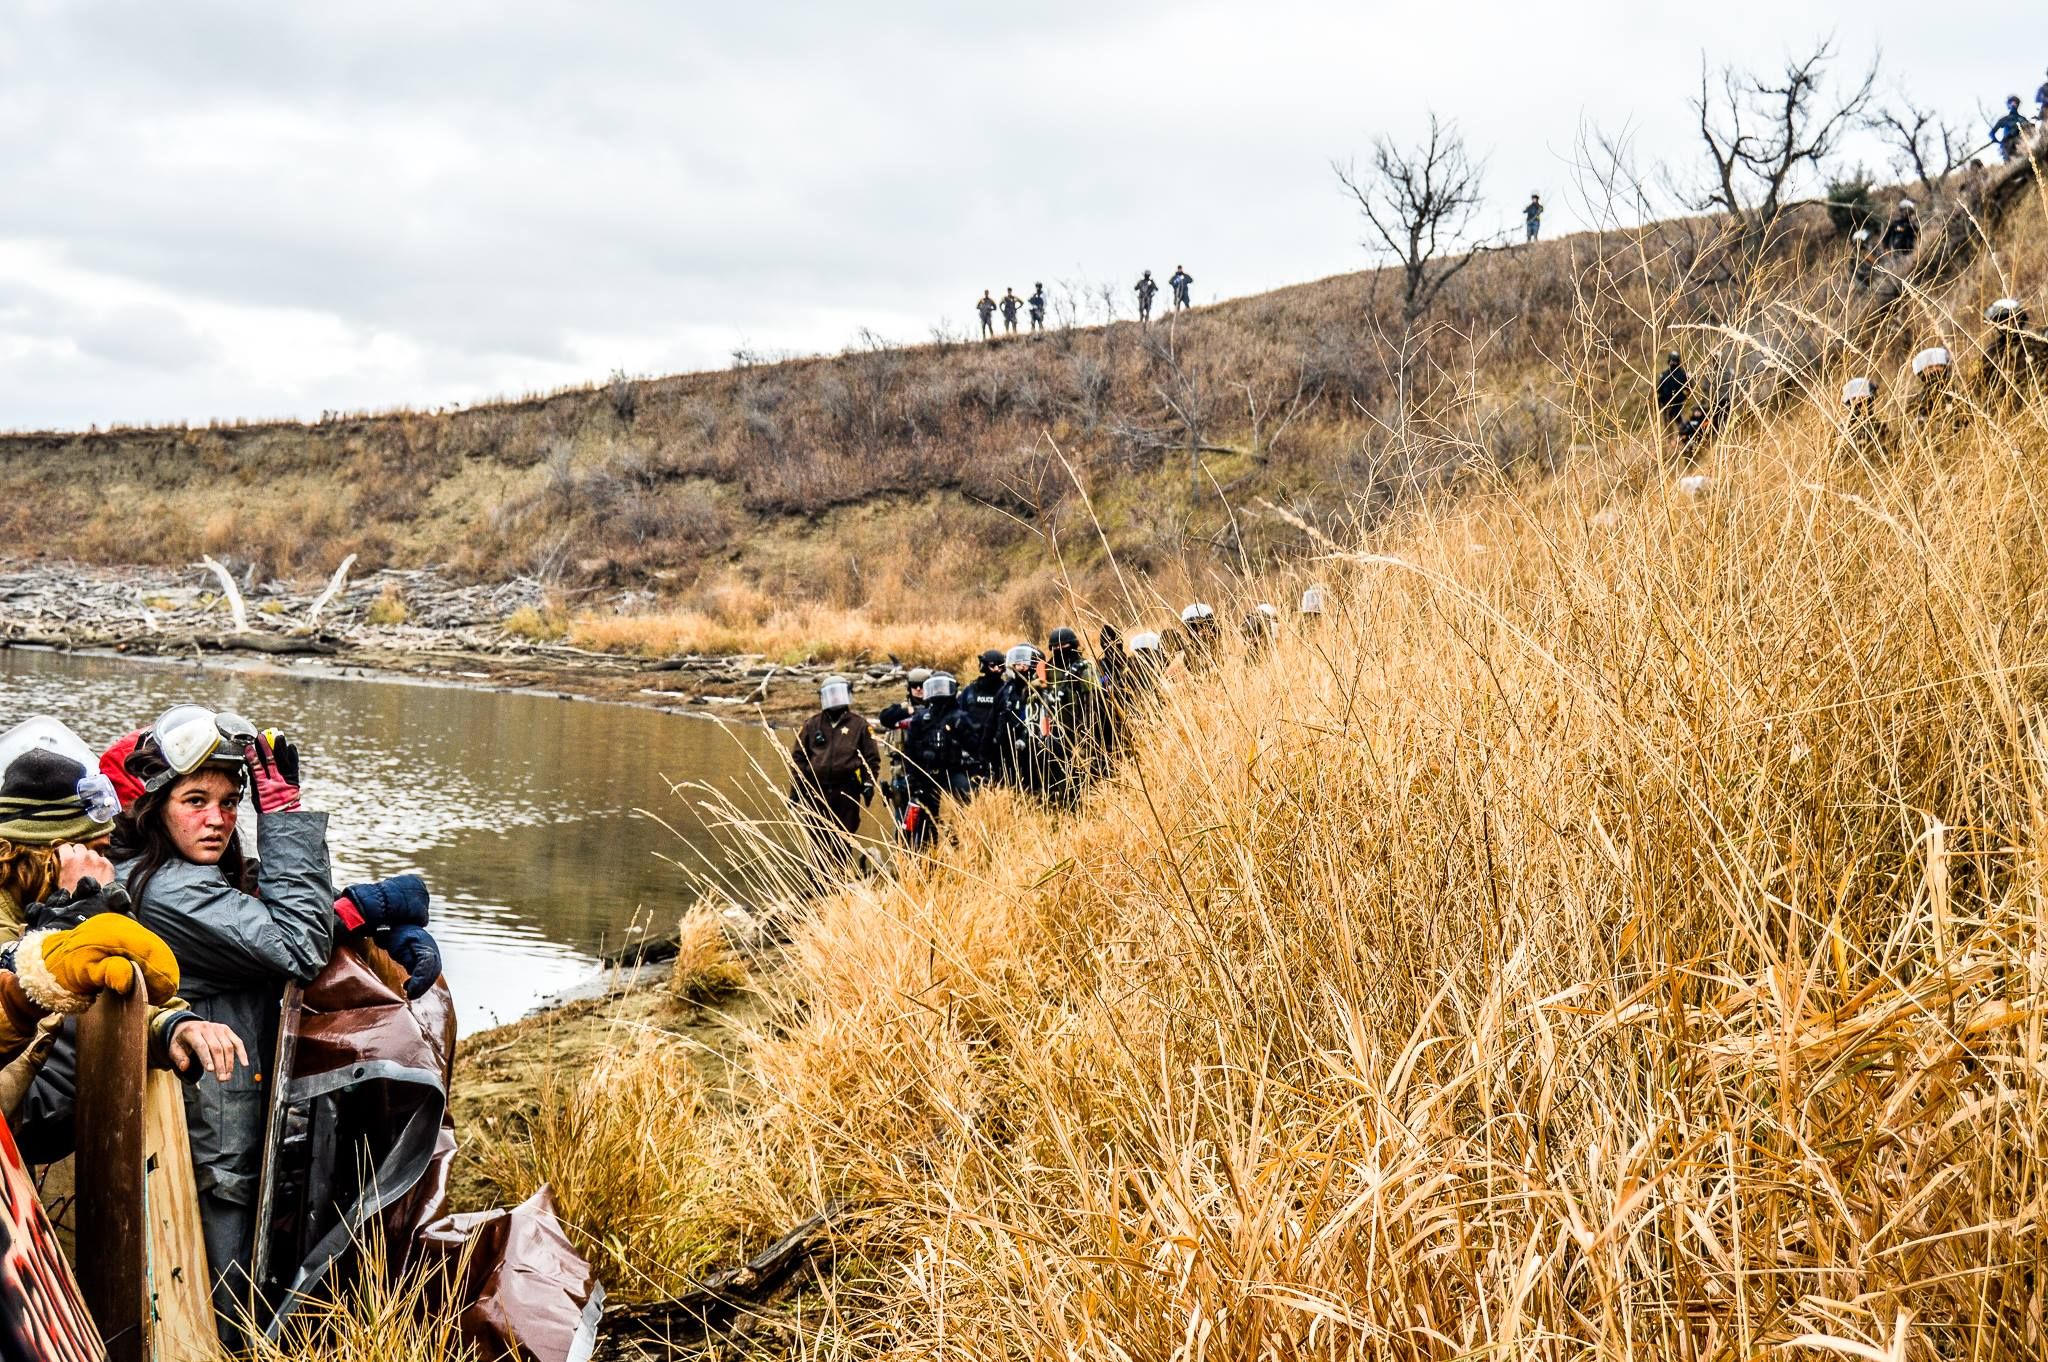 Ivan Star Comes Out: Fascist police resurface at Standing Rock